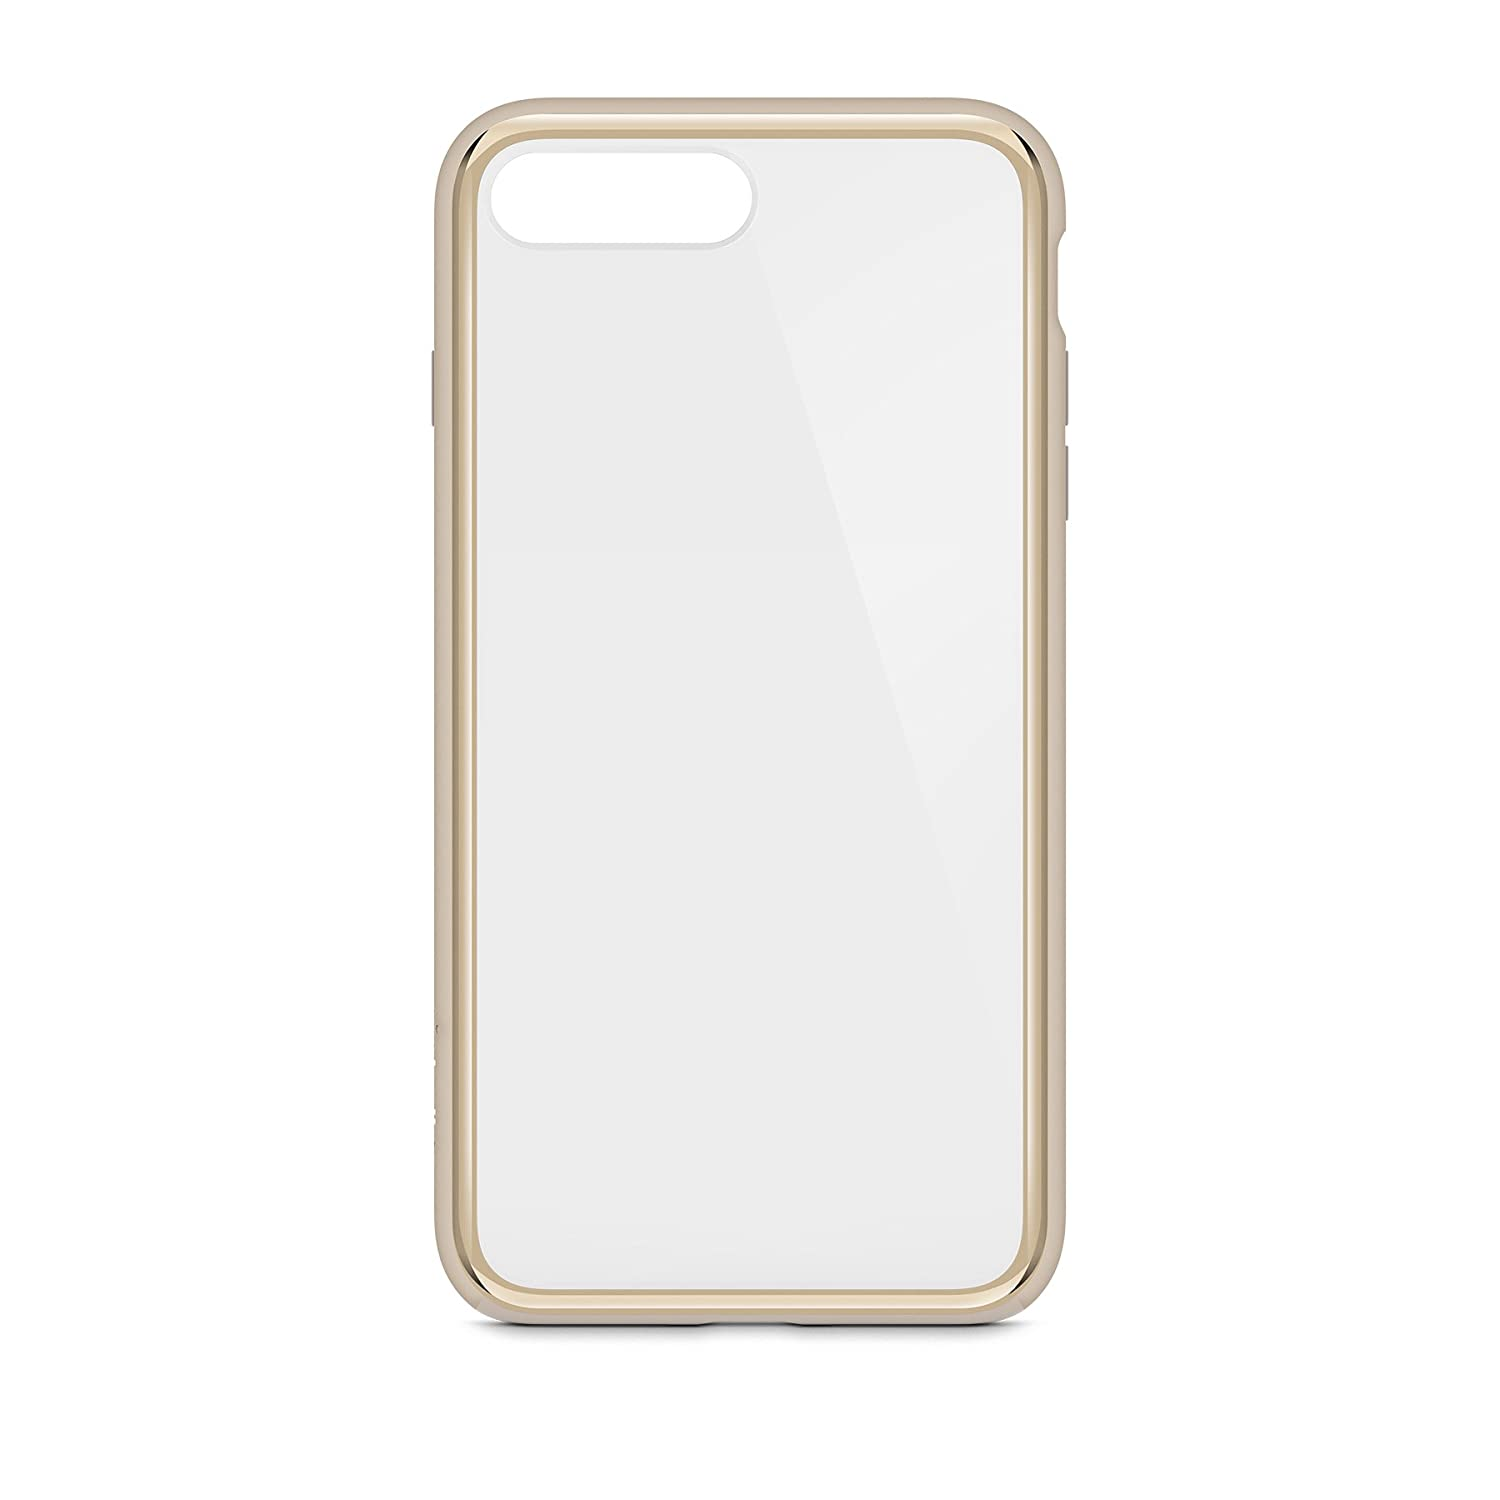 1d93c2a832 Amazon.com: Belkin SheerForce Elite Protective Case for iPhone 8 Plus and  iPhone 7 Plus (Gold): Cell Phones & Accessories